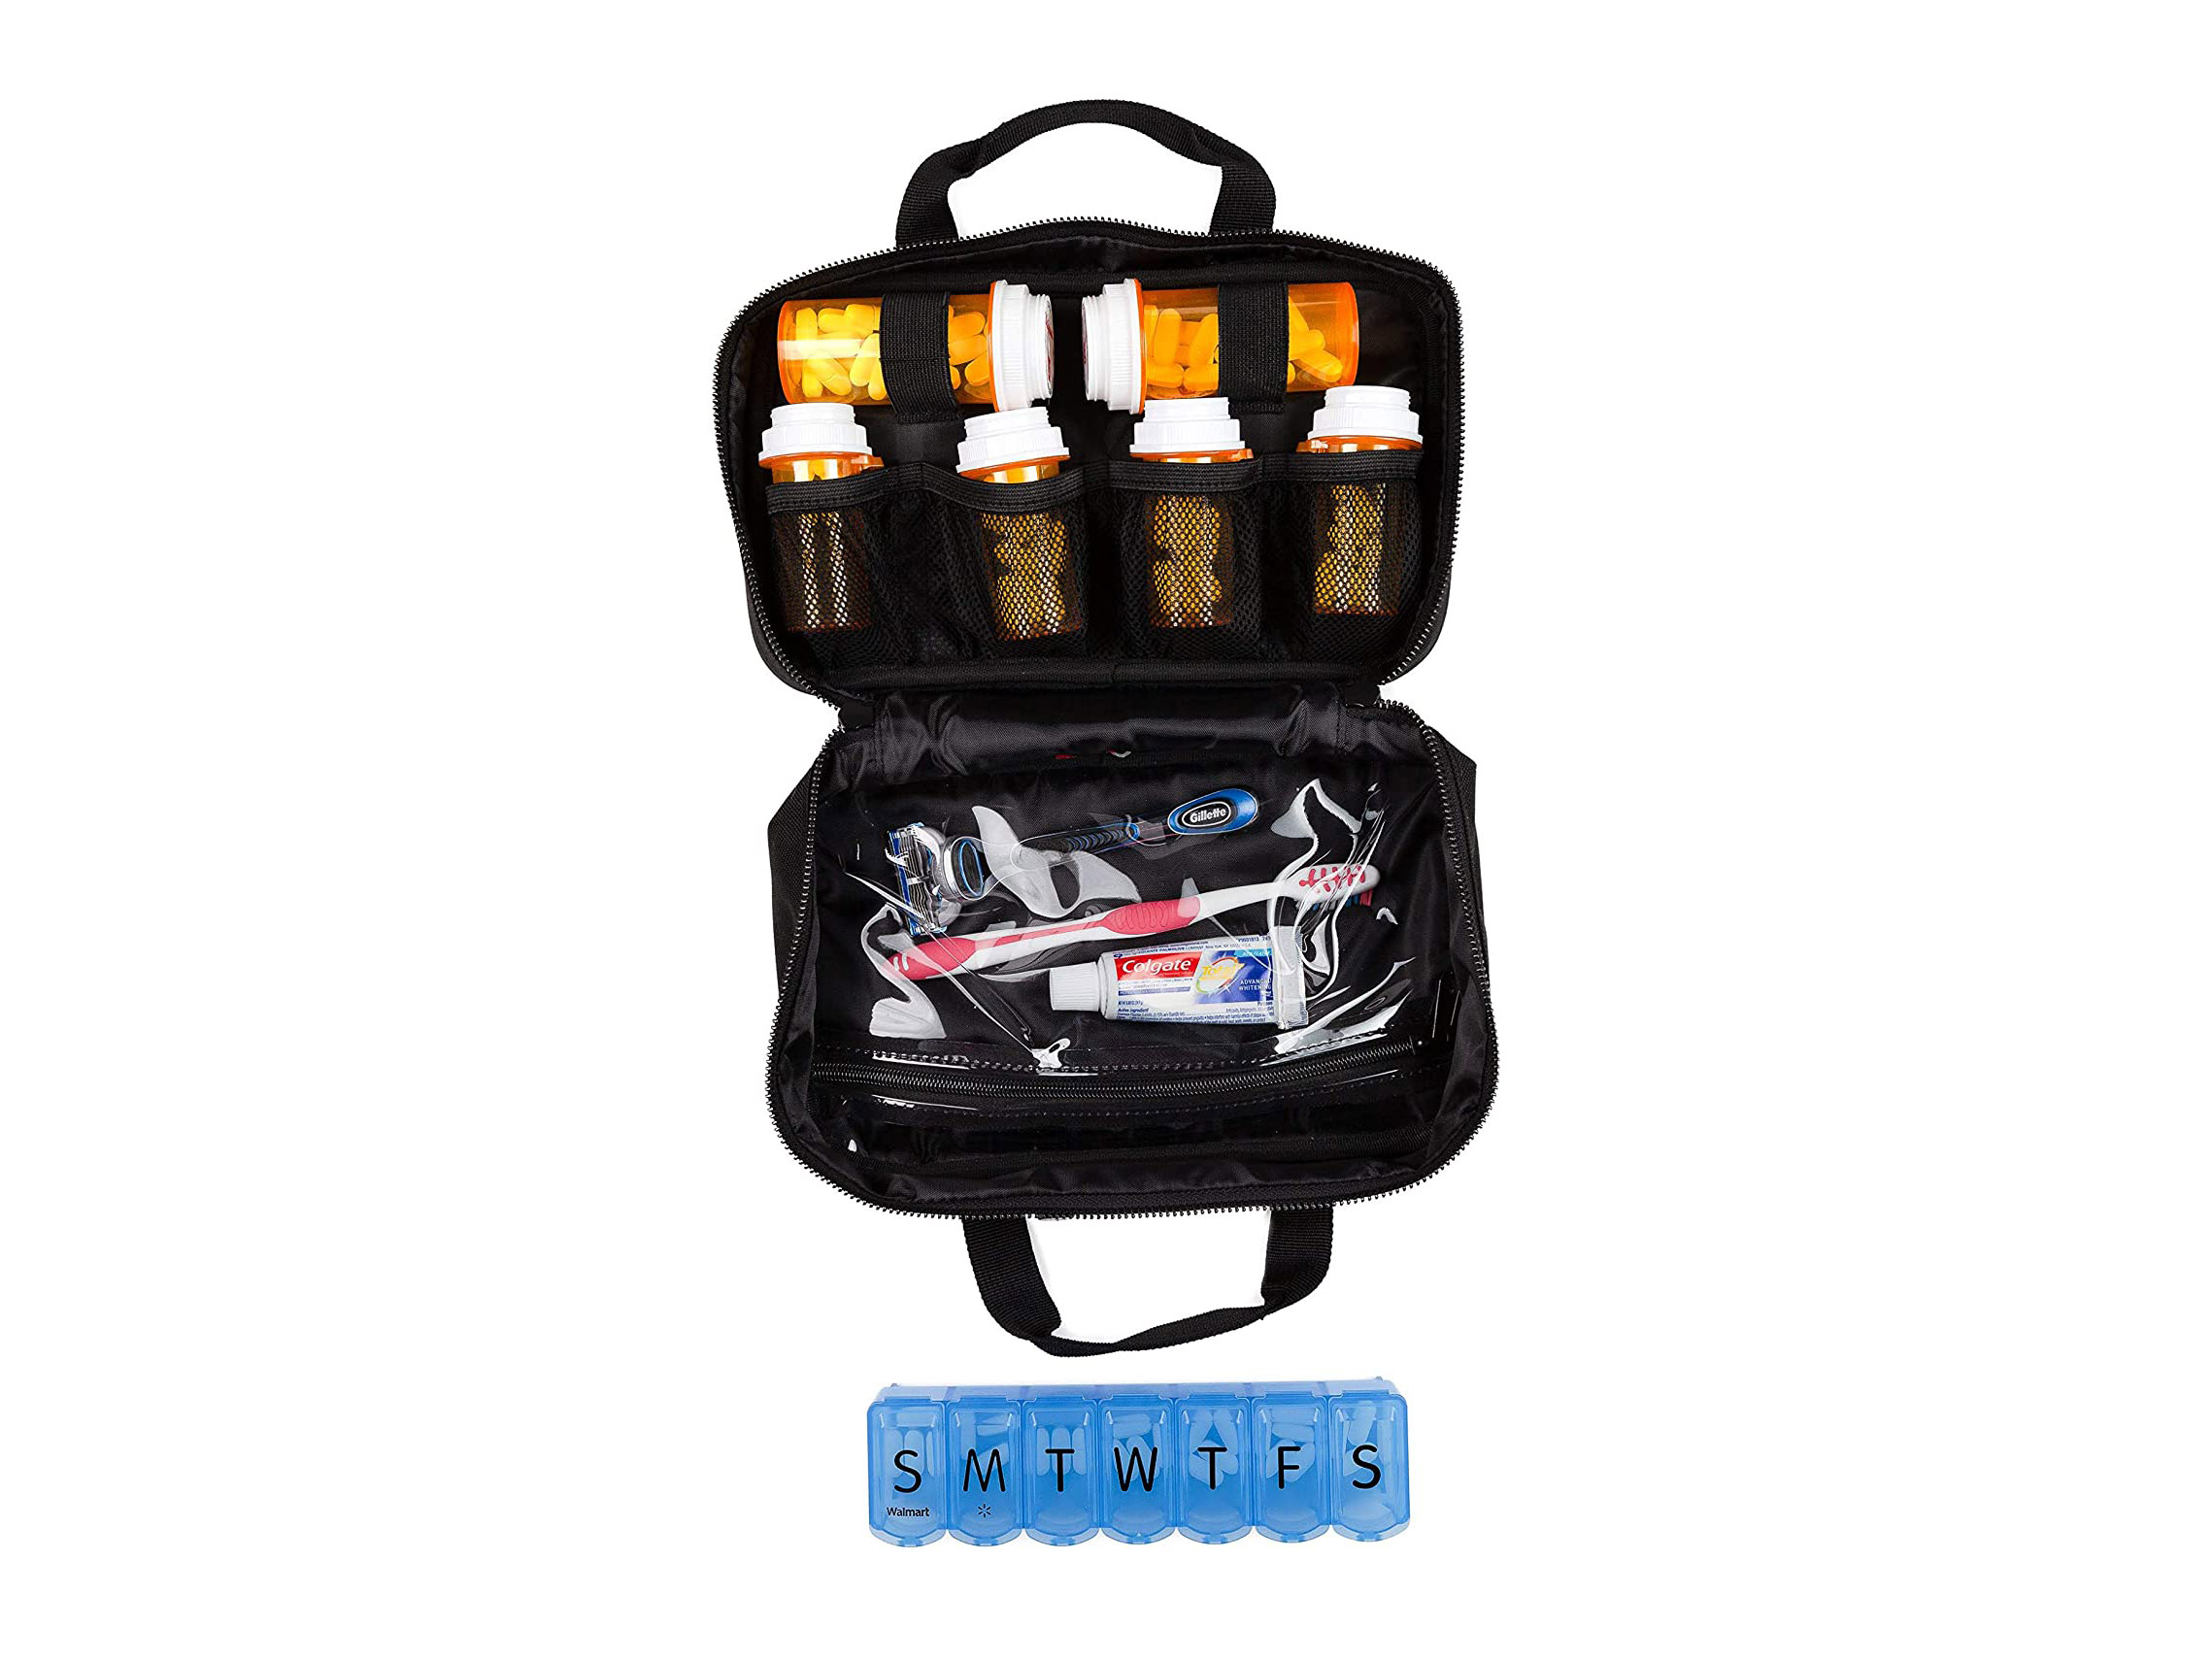 Best Covid-19 Travel Accessories - Medicine Rx Safe